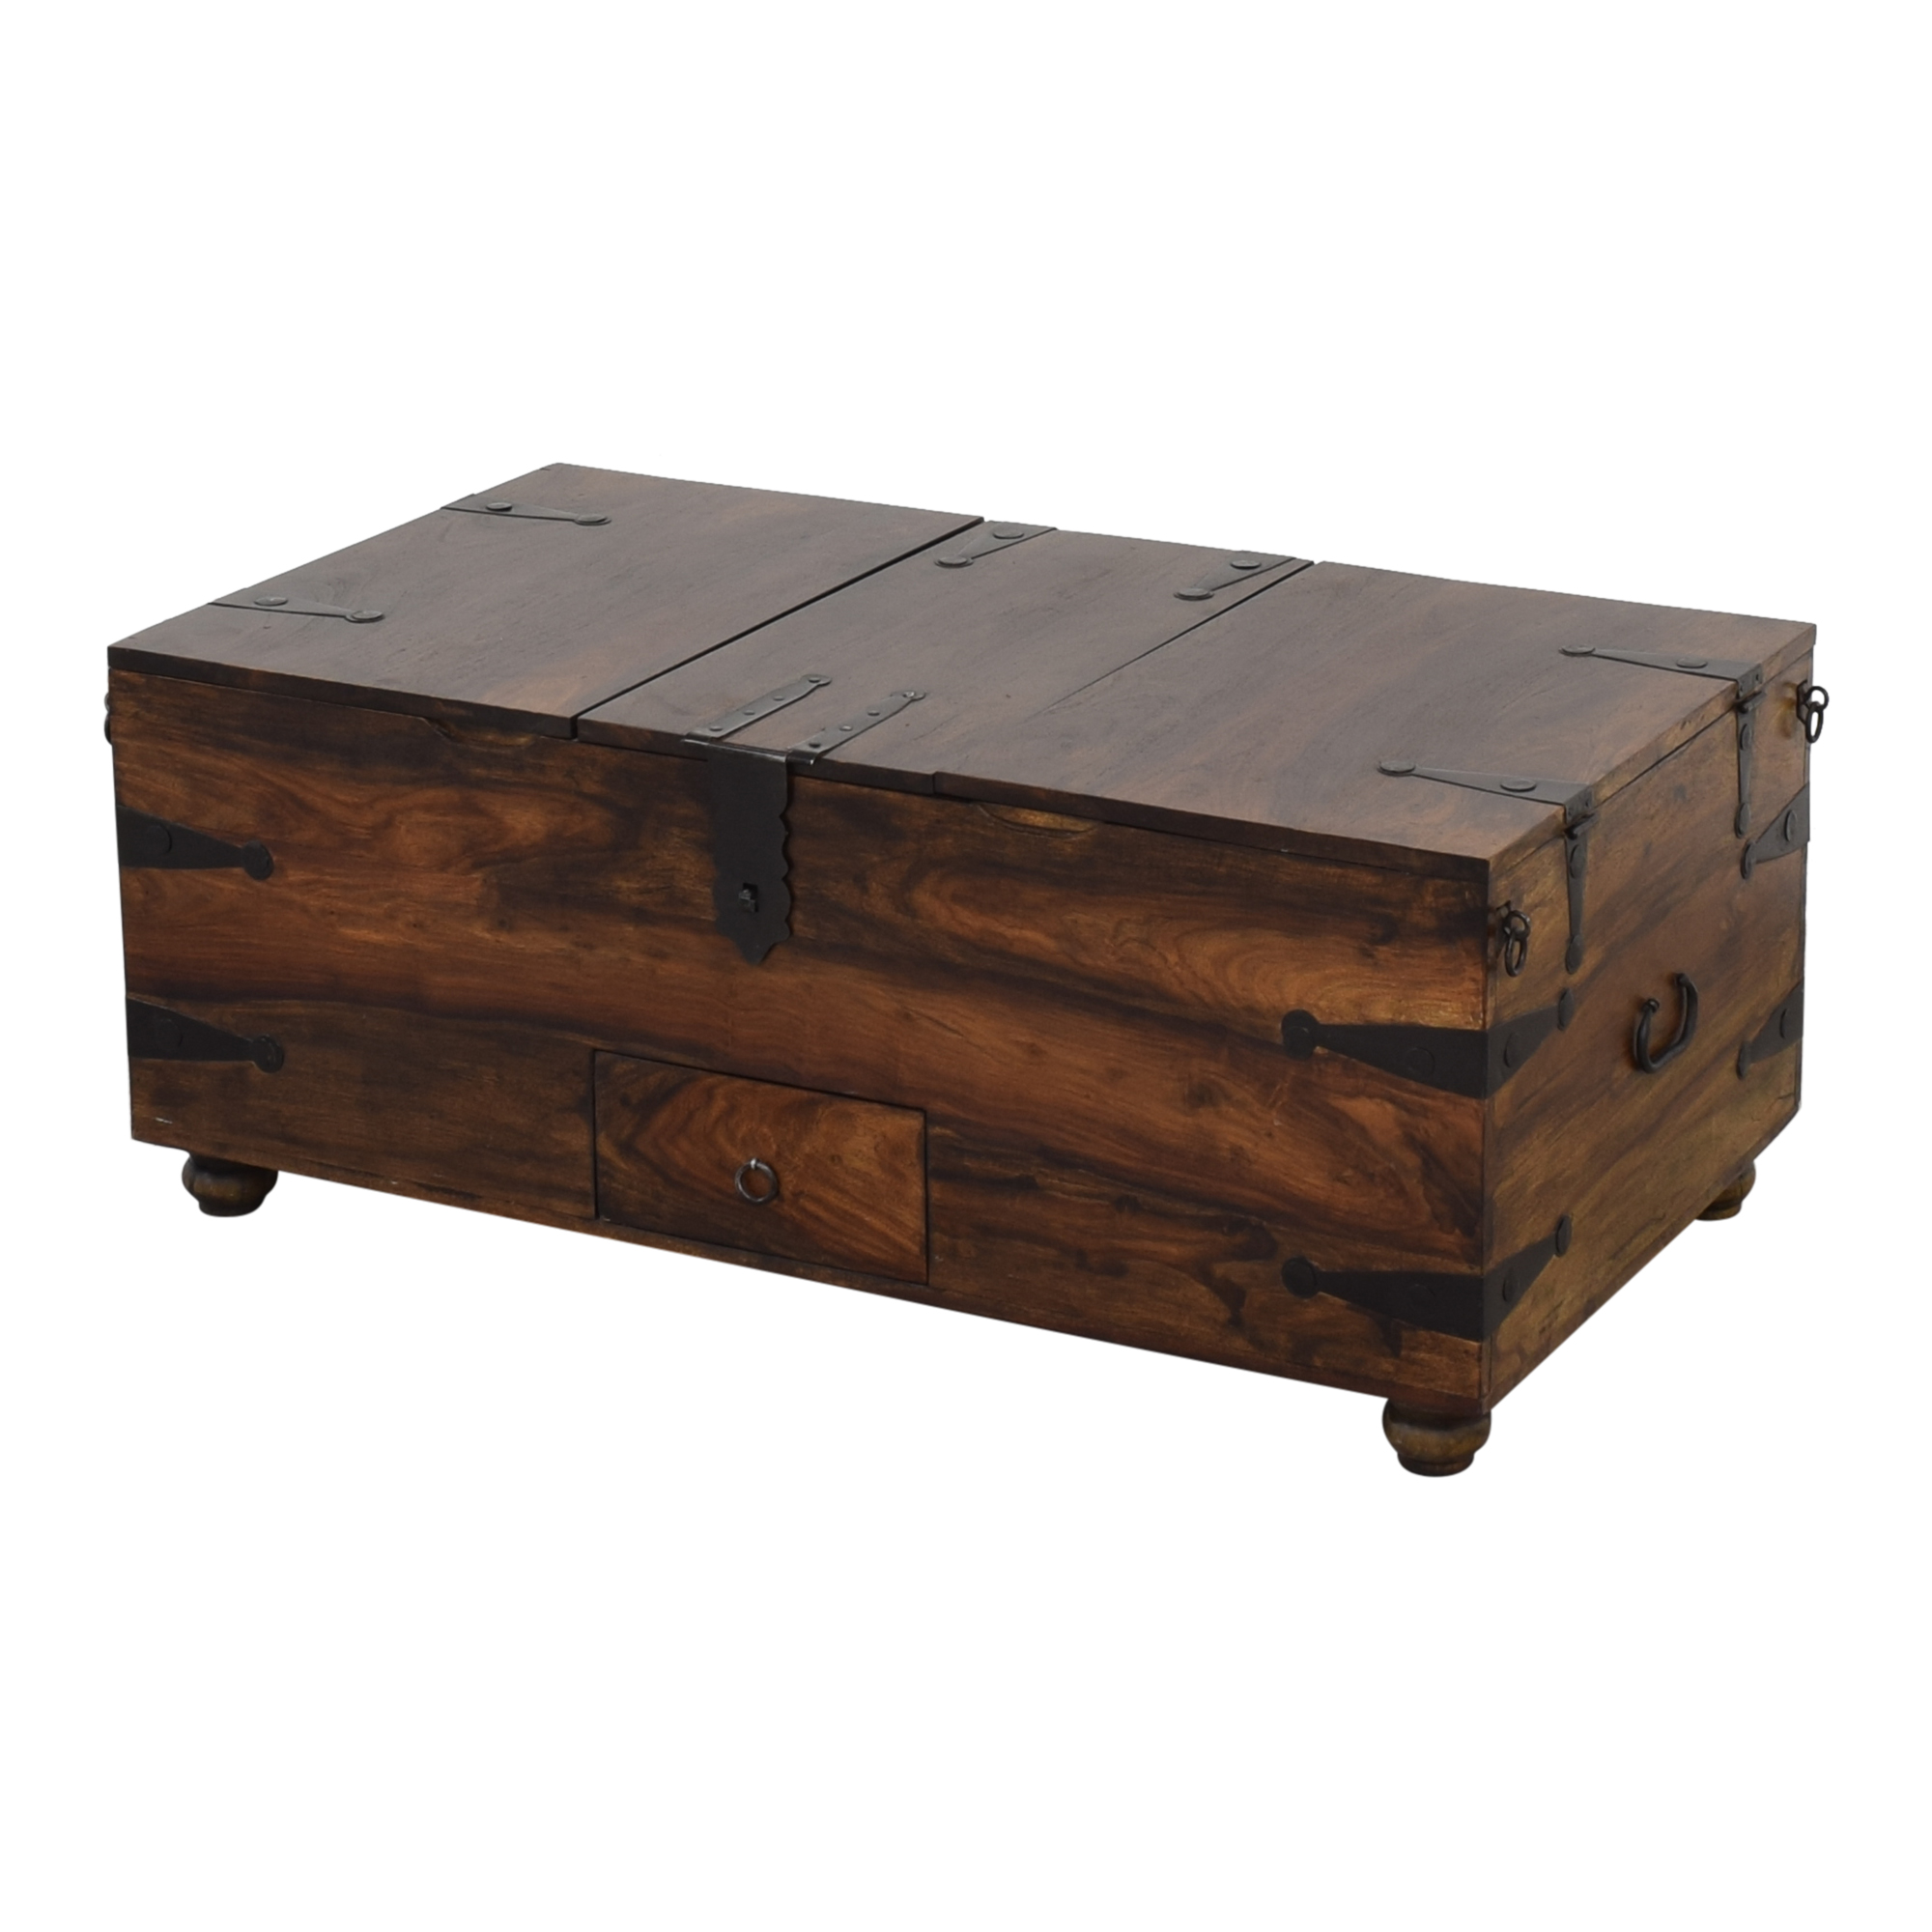 shop Crate & Barrel Taka Trunk and Coffee Table Crate & Barrel Trunks